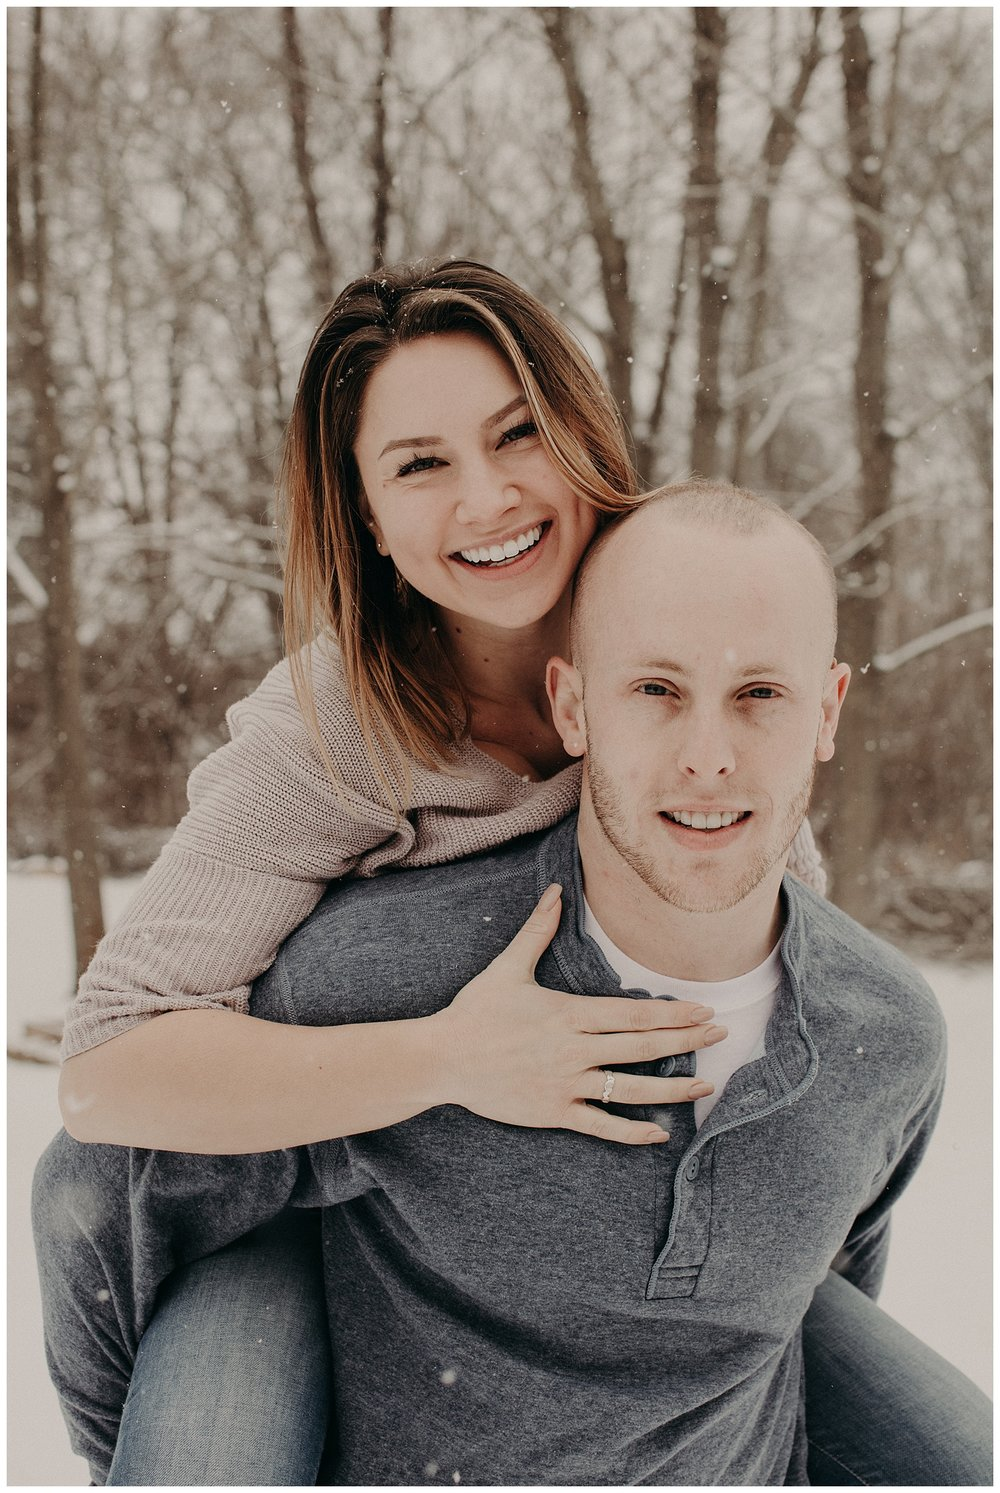 tom-hannah-snow-winter-home-engagement-session-rhode-island19.jpg